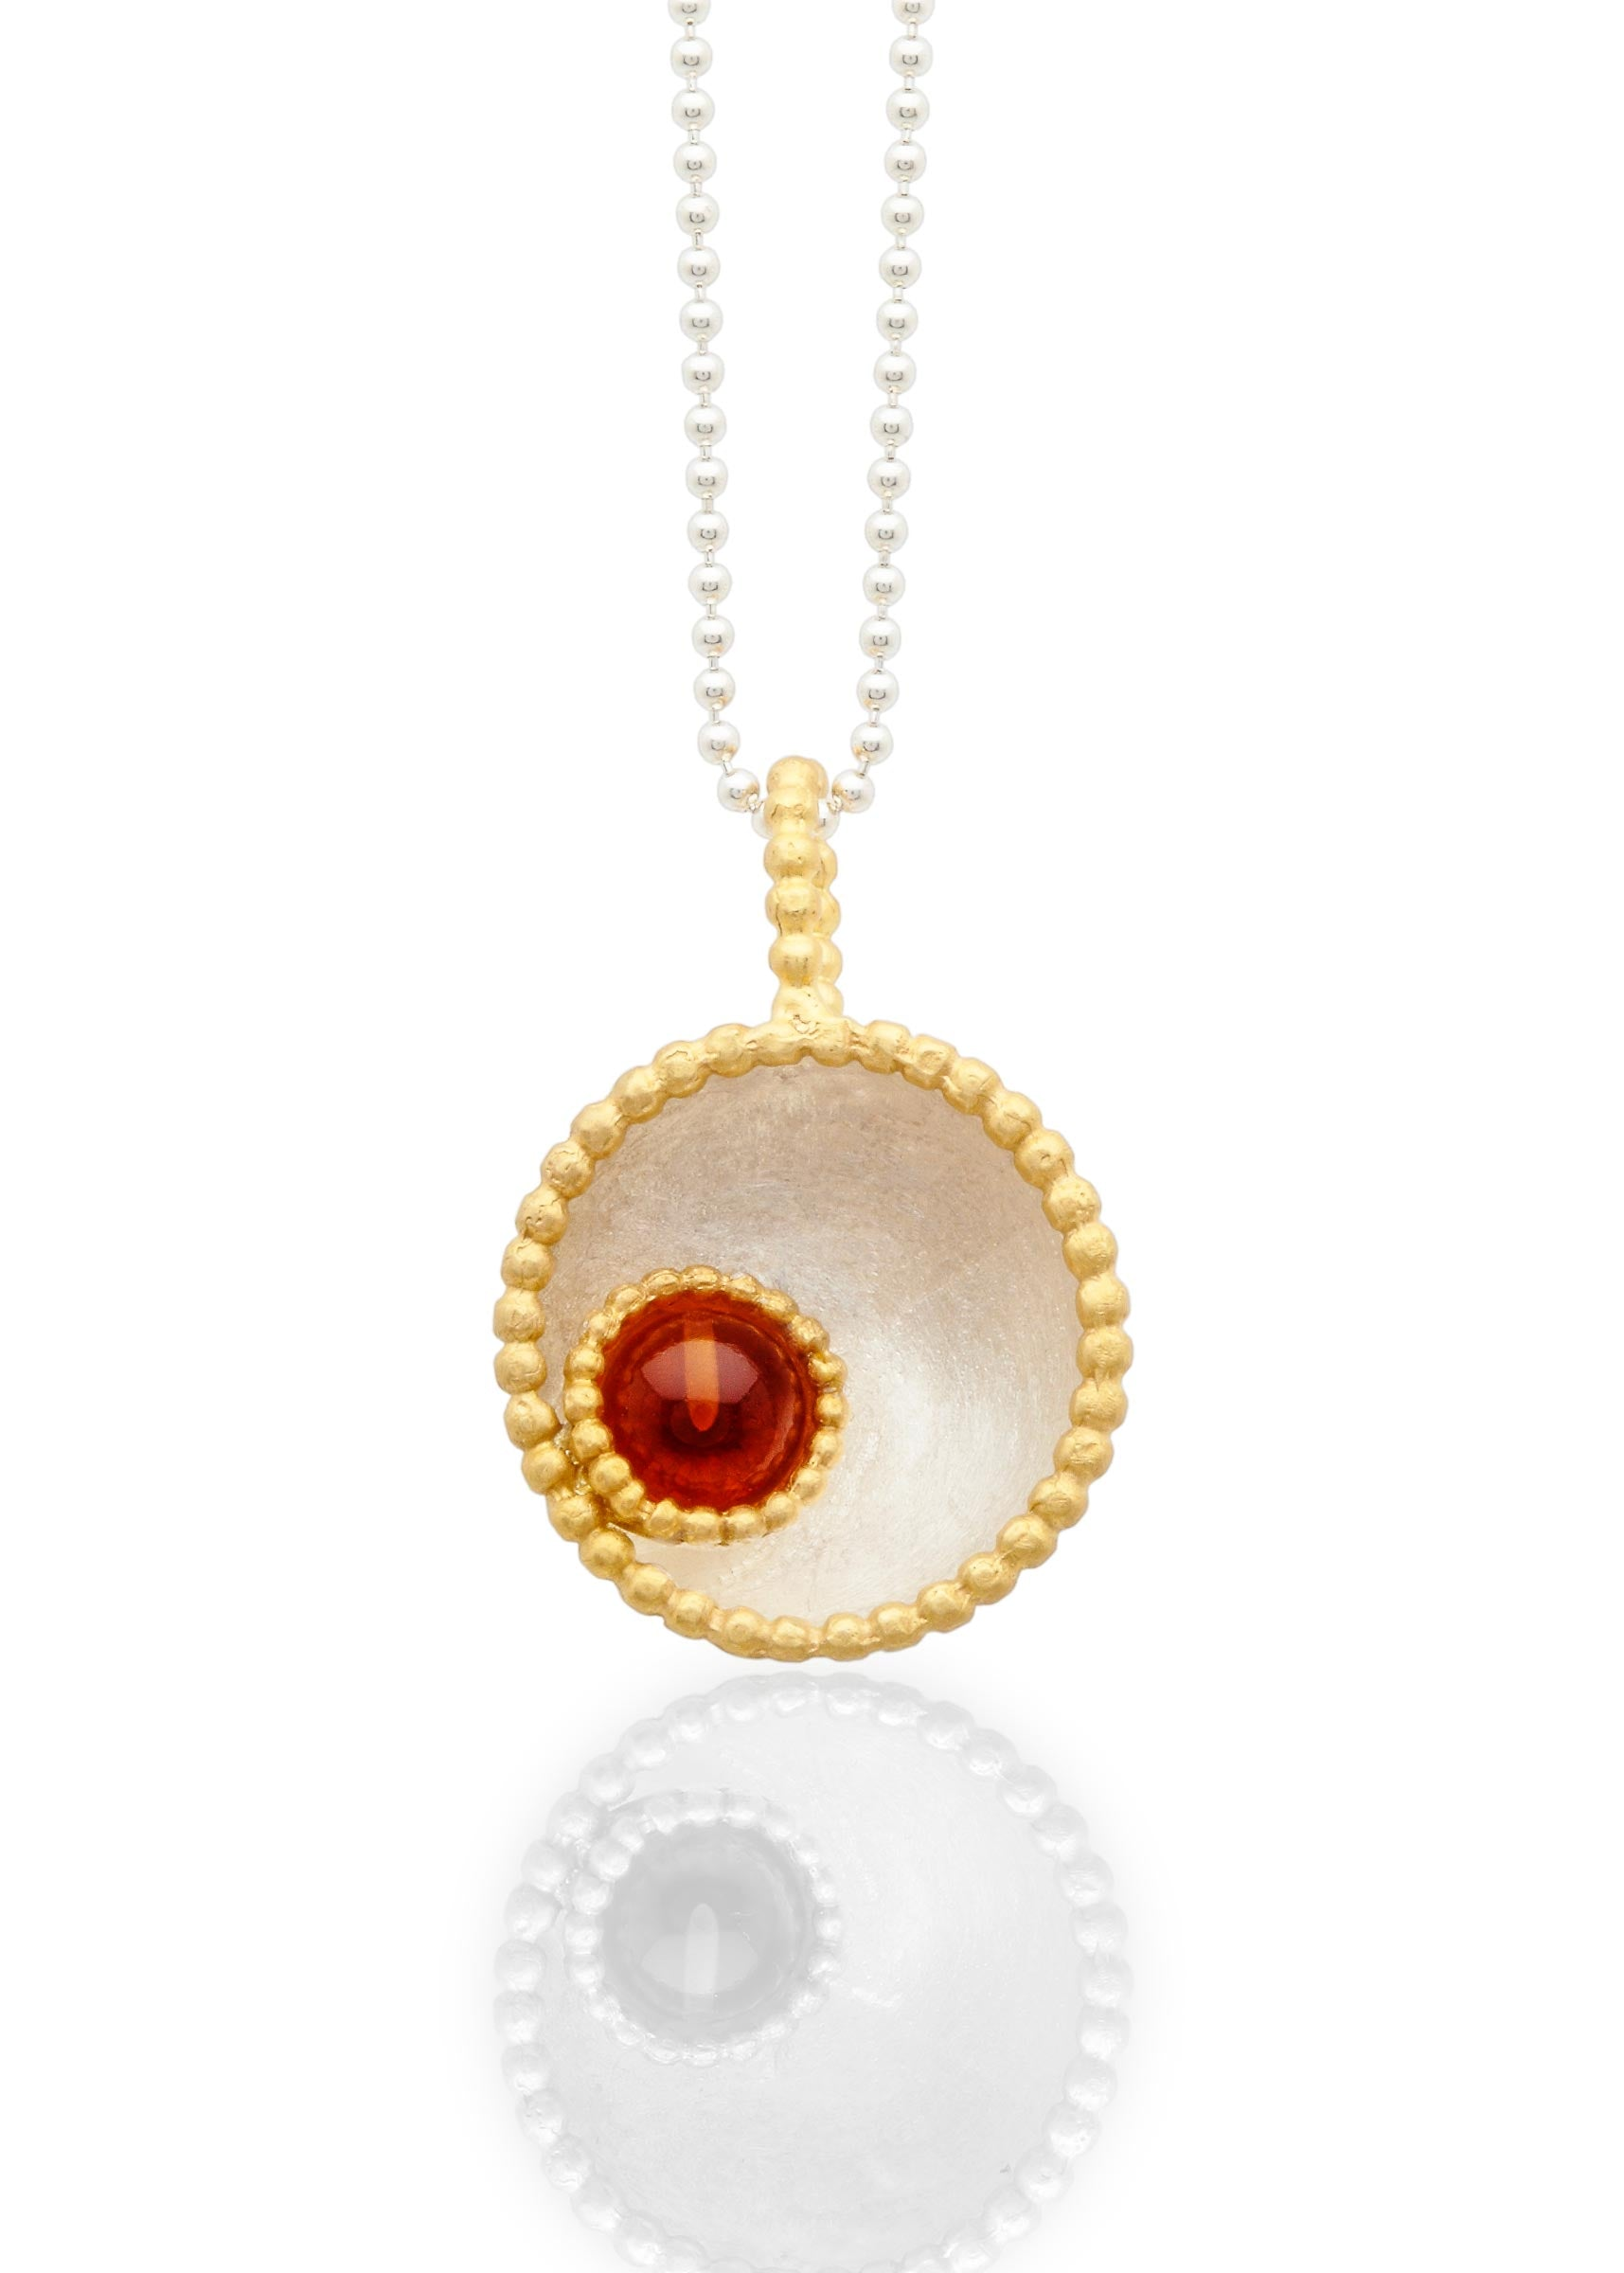 Byzantine dome pendant with cornelian